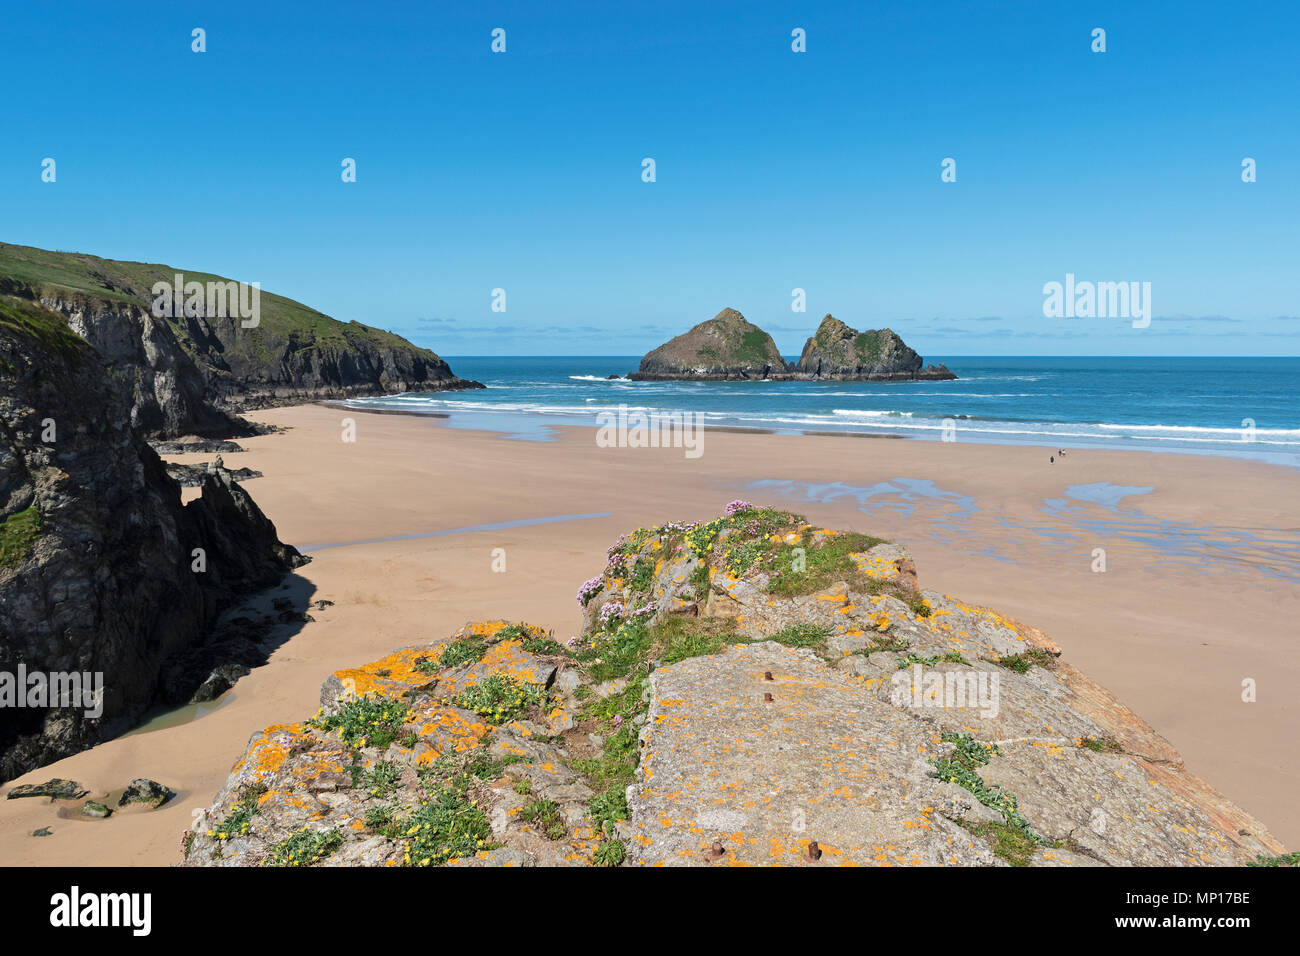 holywell bay in cornwall, england, britain, uk, the beach is used as a filming location for hit bbc tv series poldark. - Stock Image